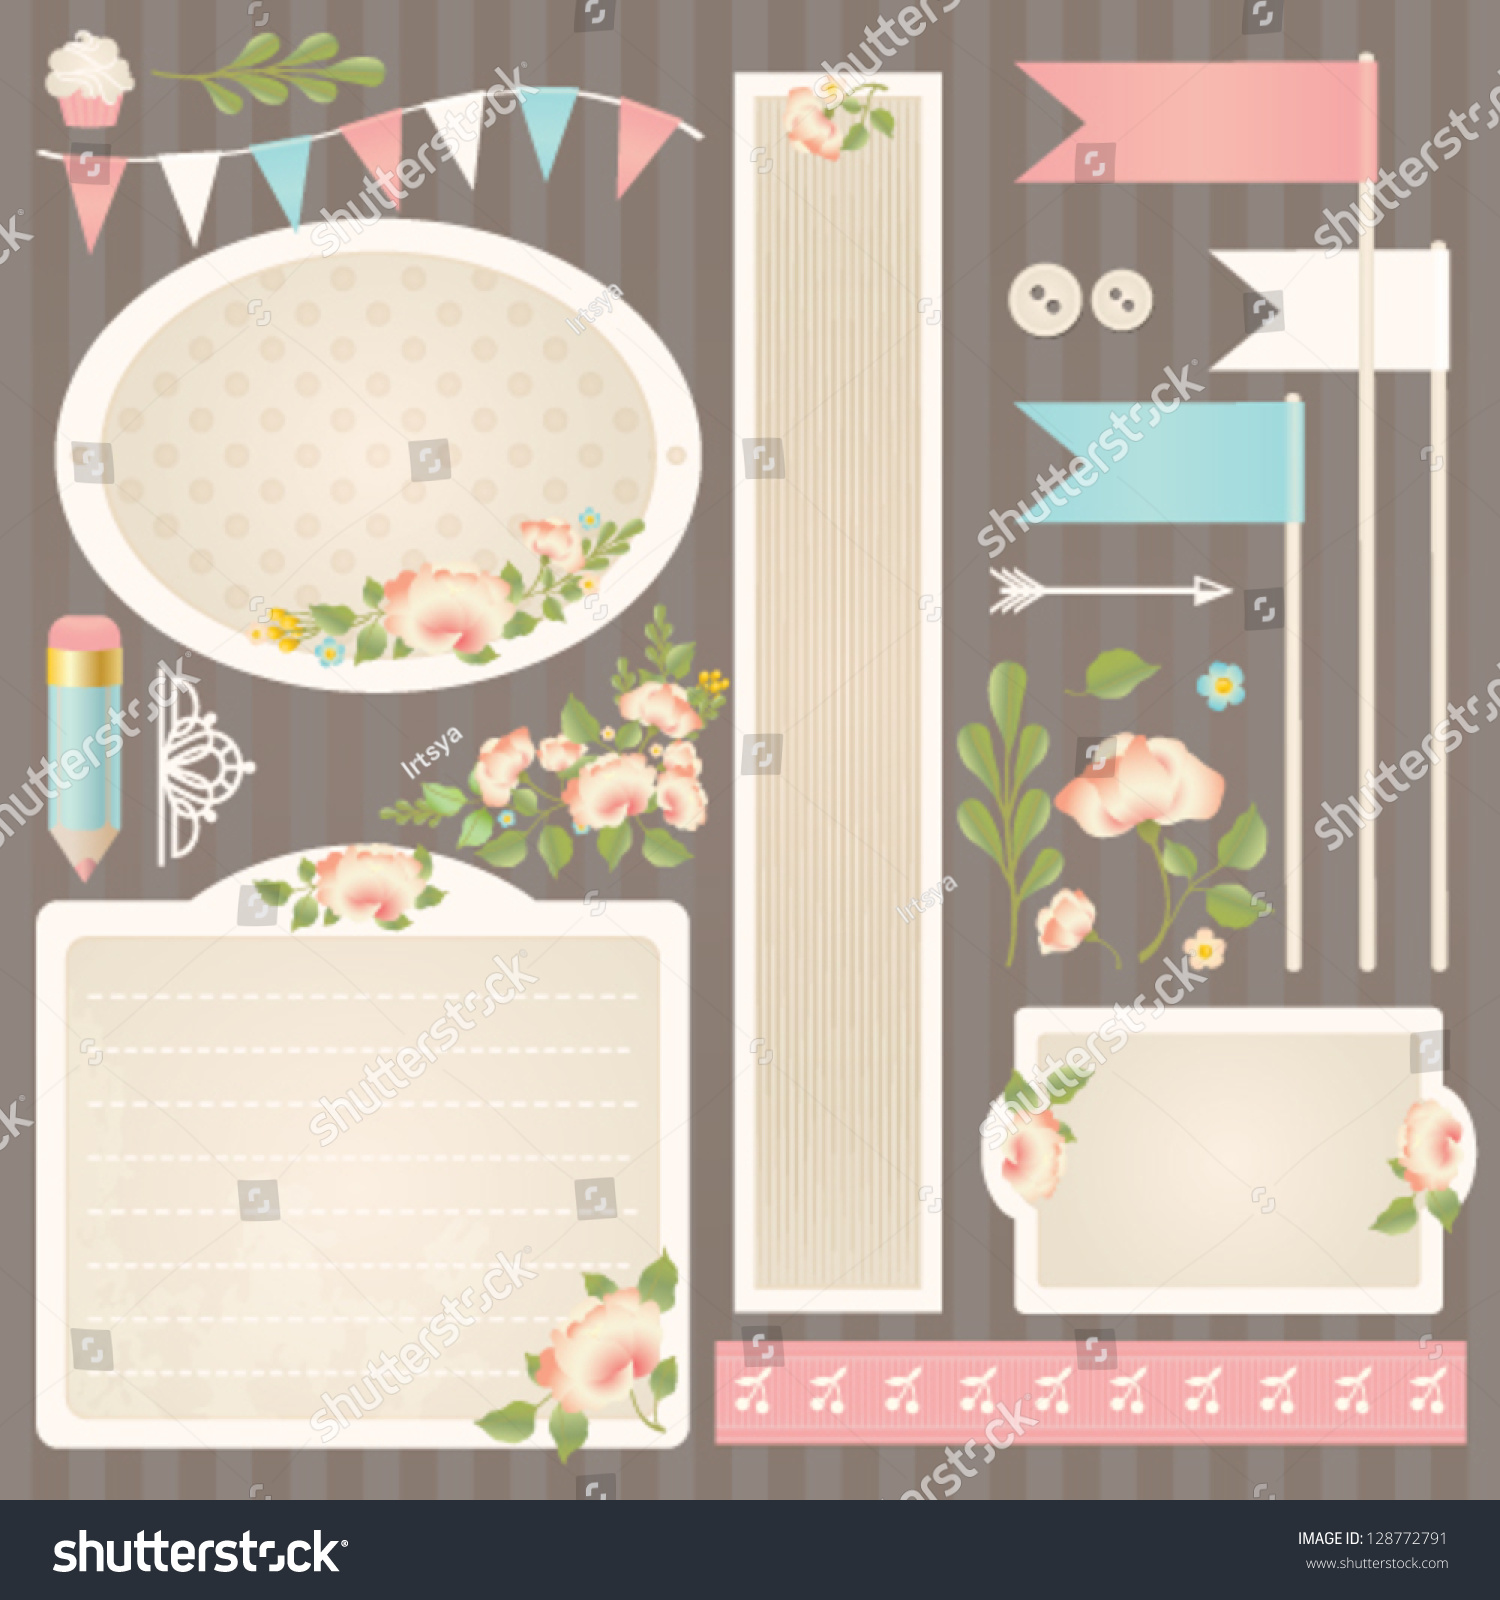 Shabby Chic Design Elements Collection Vector Stock Vector